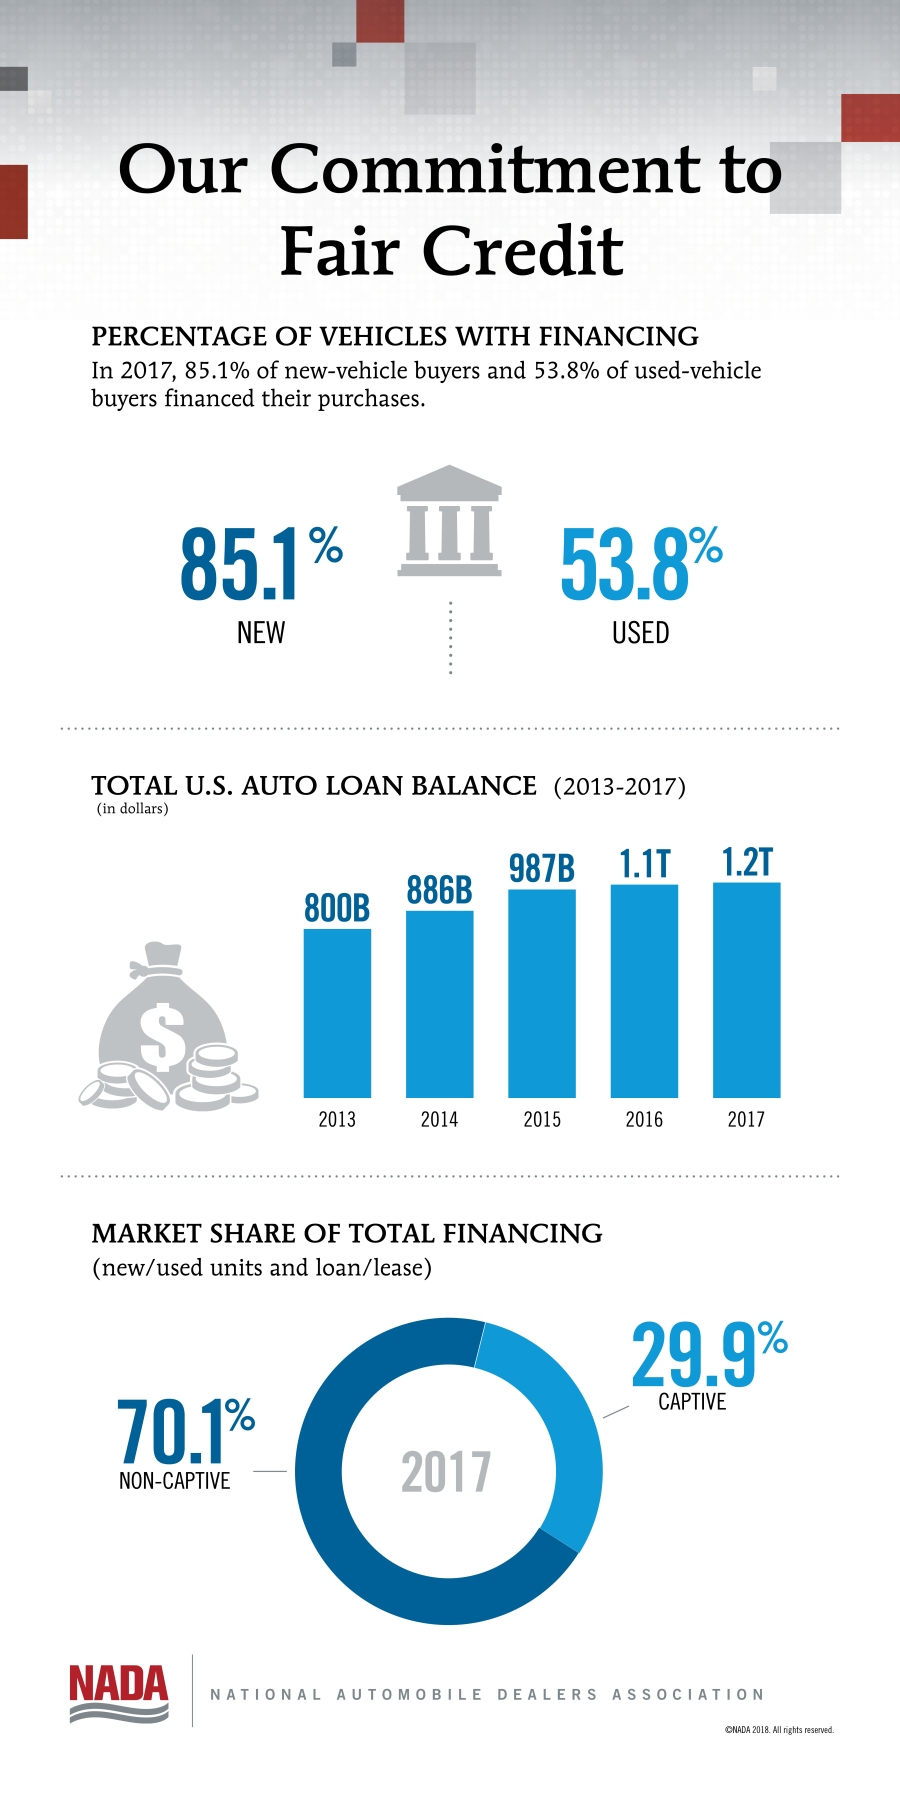 4058_PA_AN_Advertorial_FairCredit_Infographic